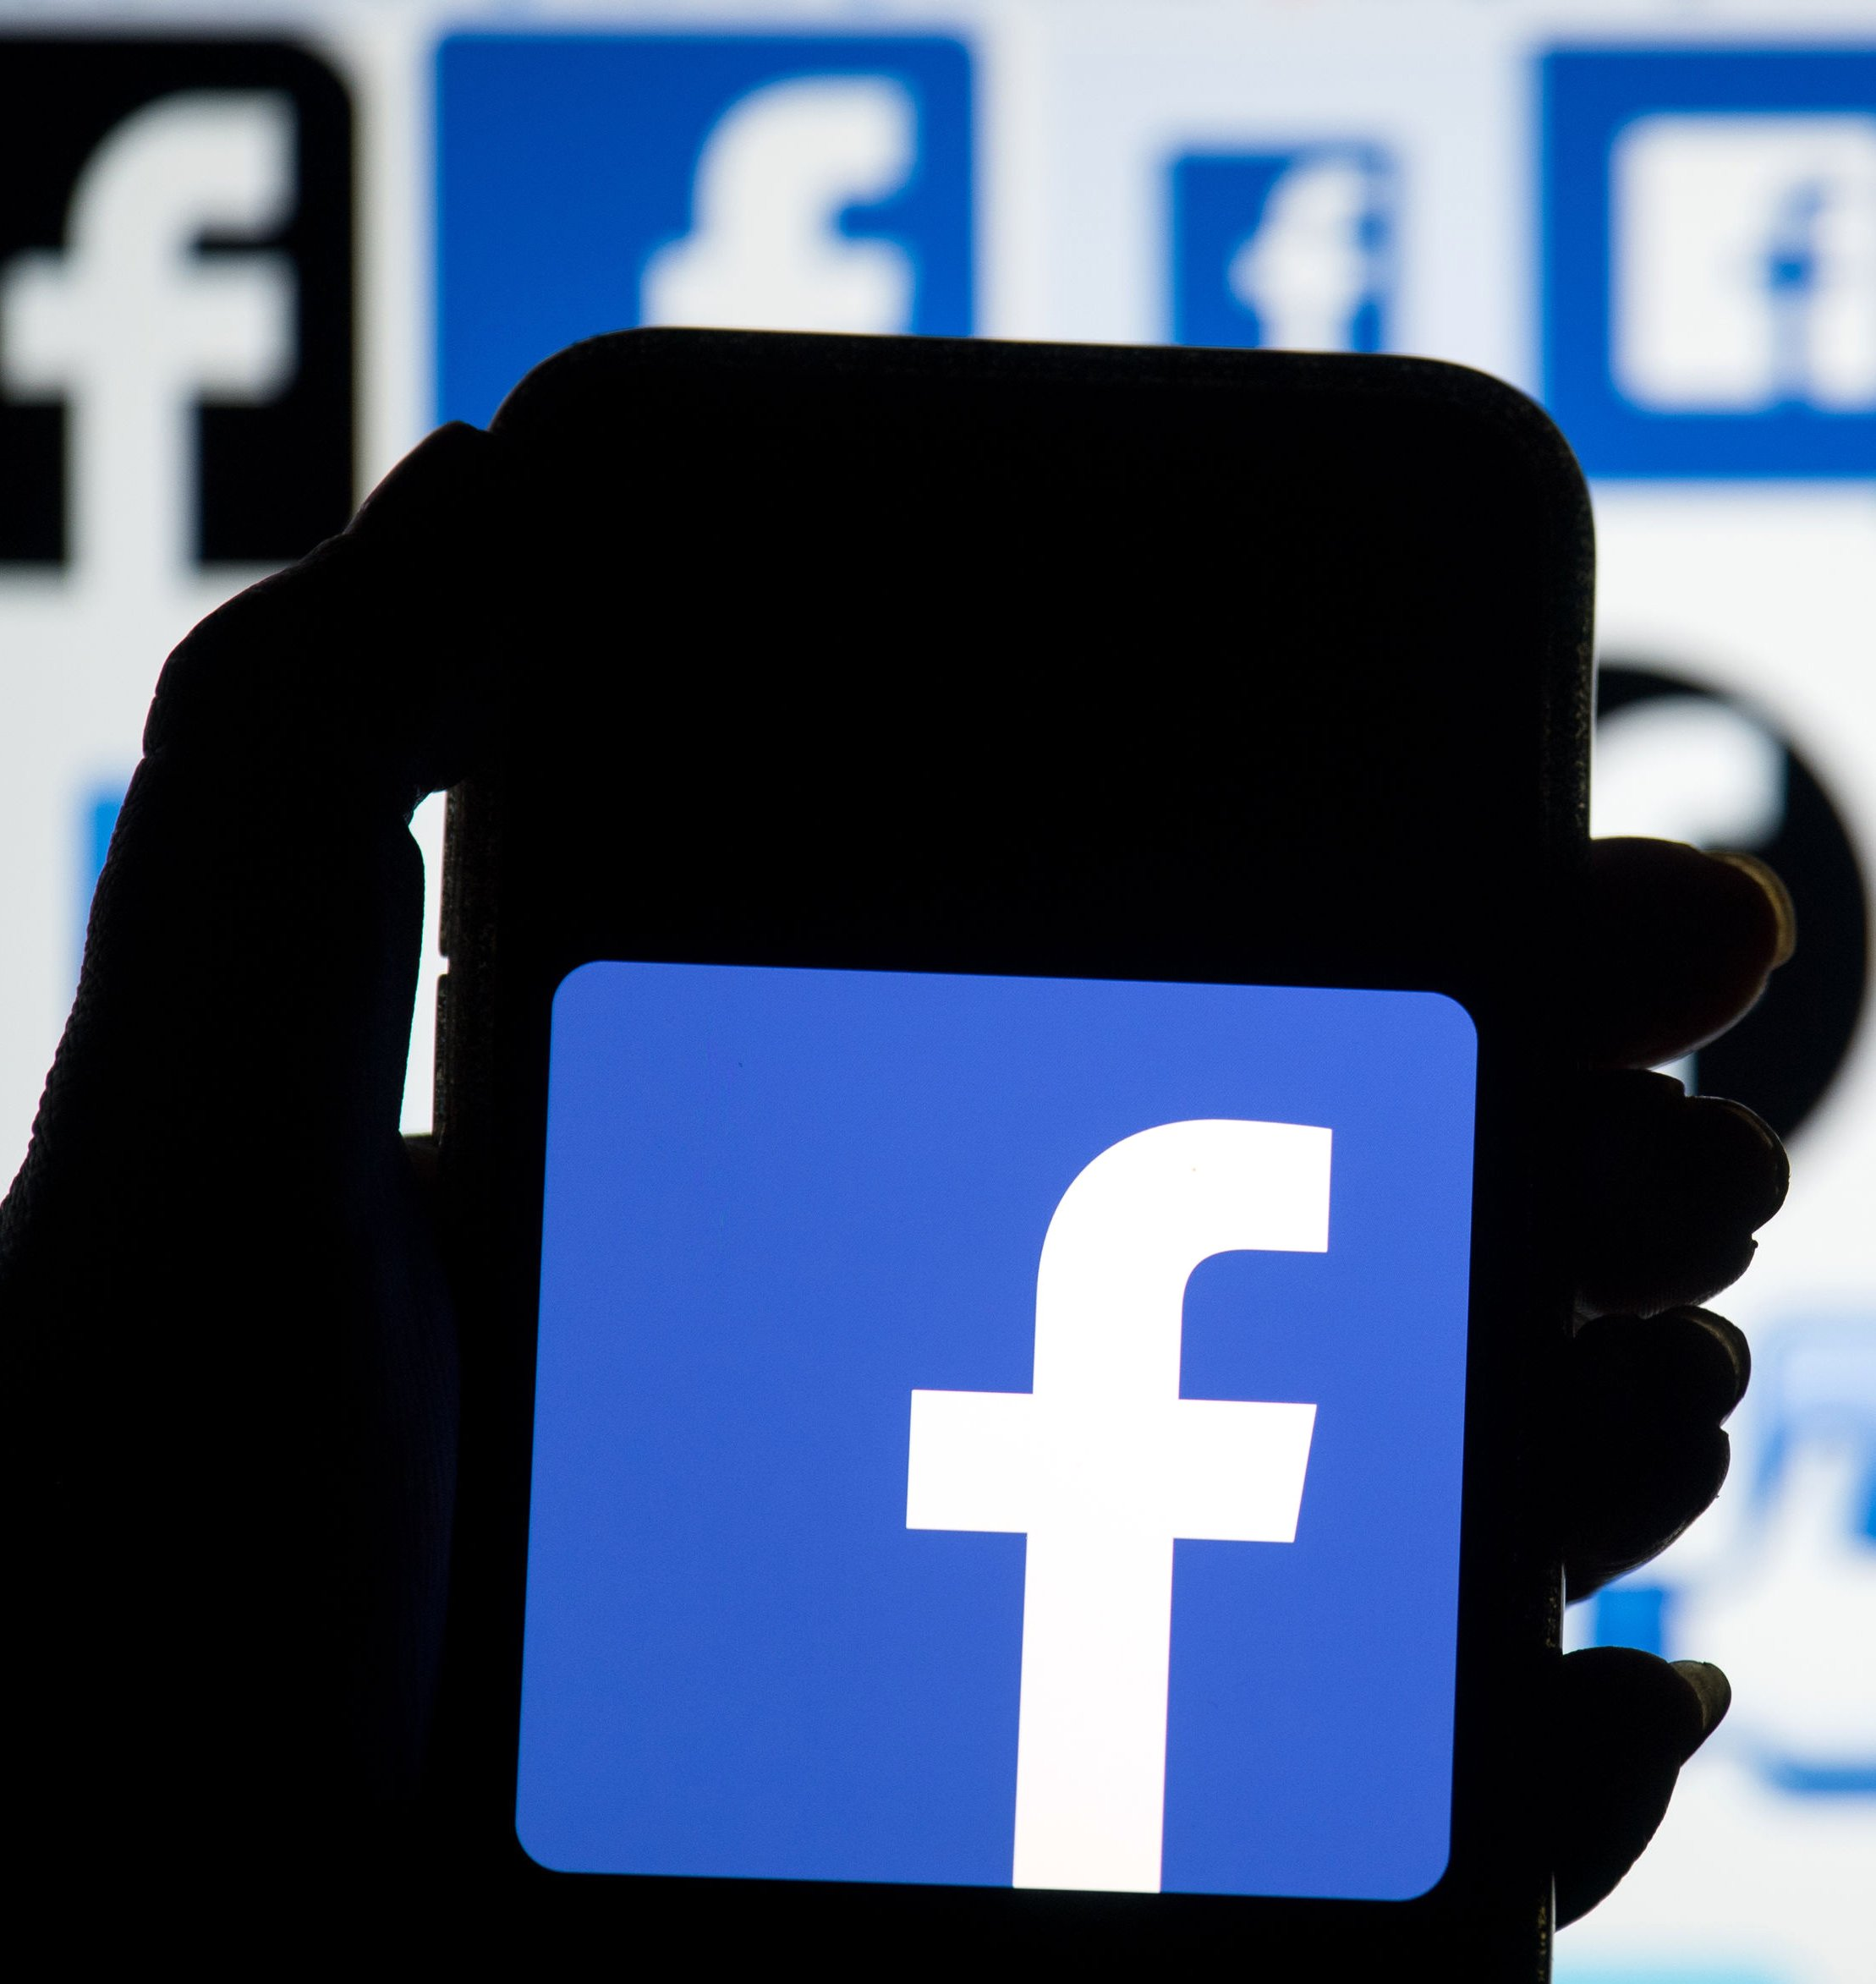 Facebook encryption plans could increase risk of online child abuse, MPs told